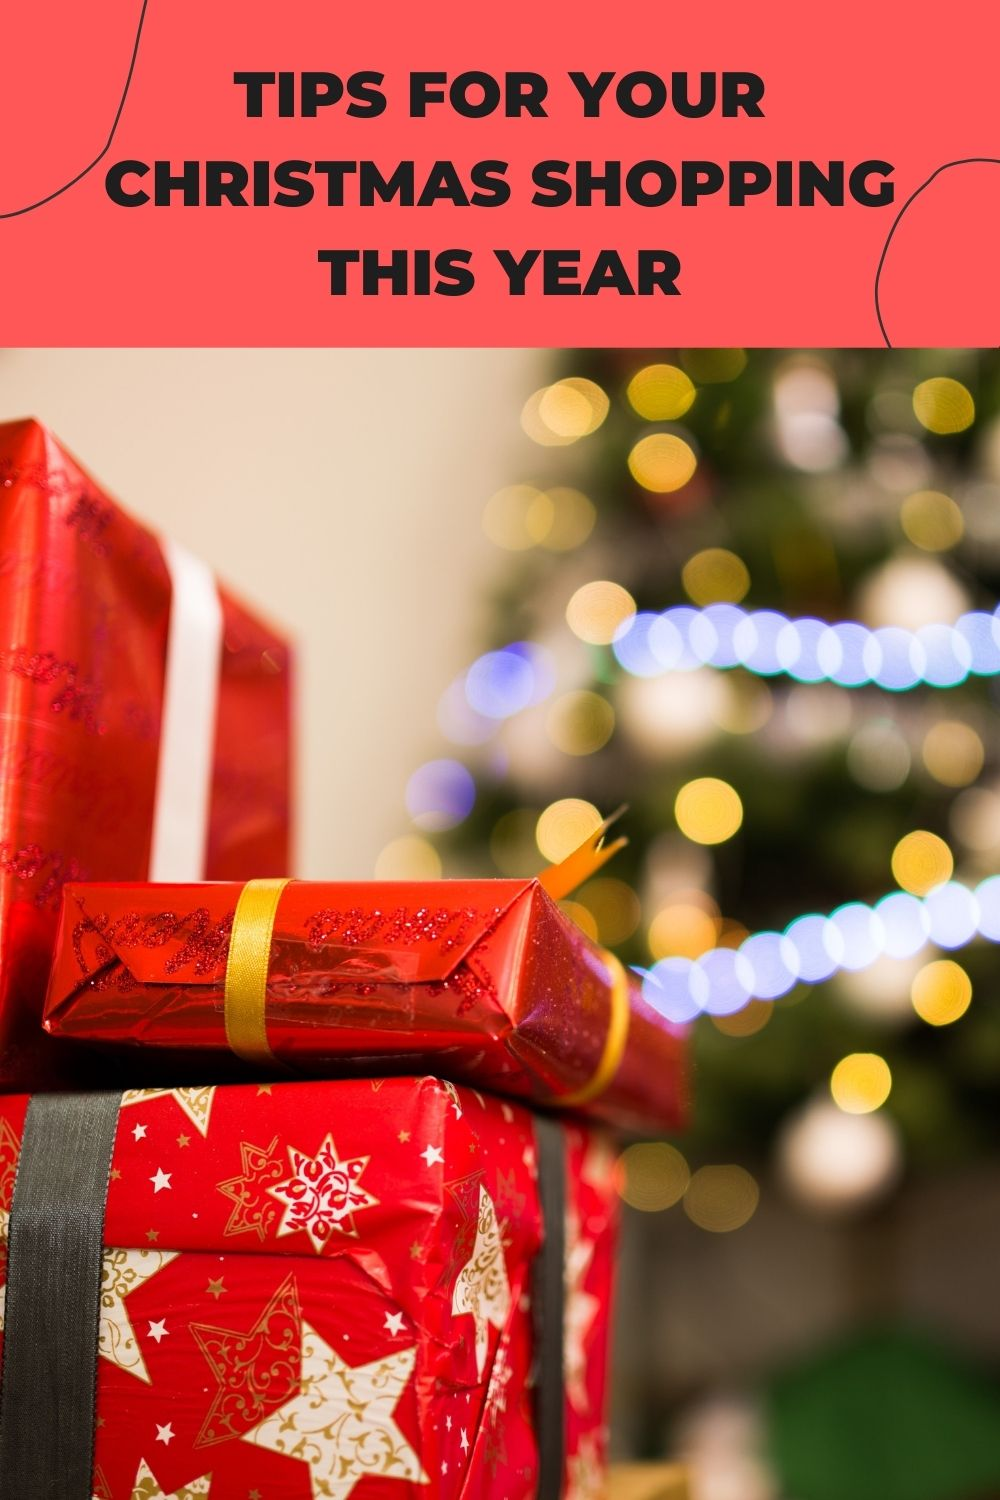 Tips For Your Christmas Shopping This Year